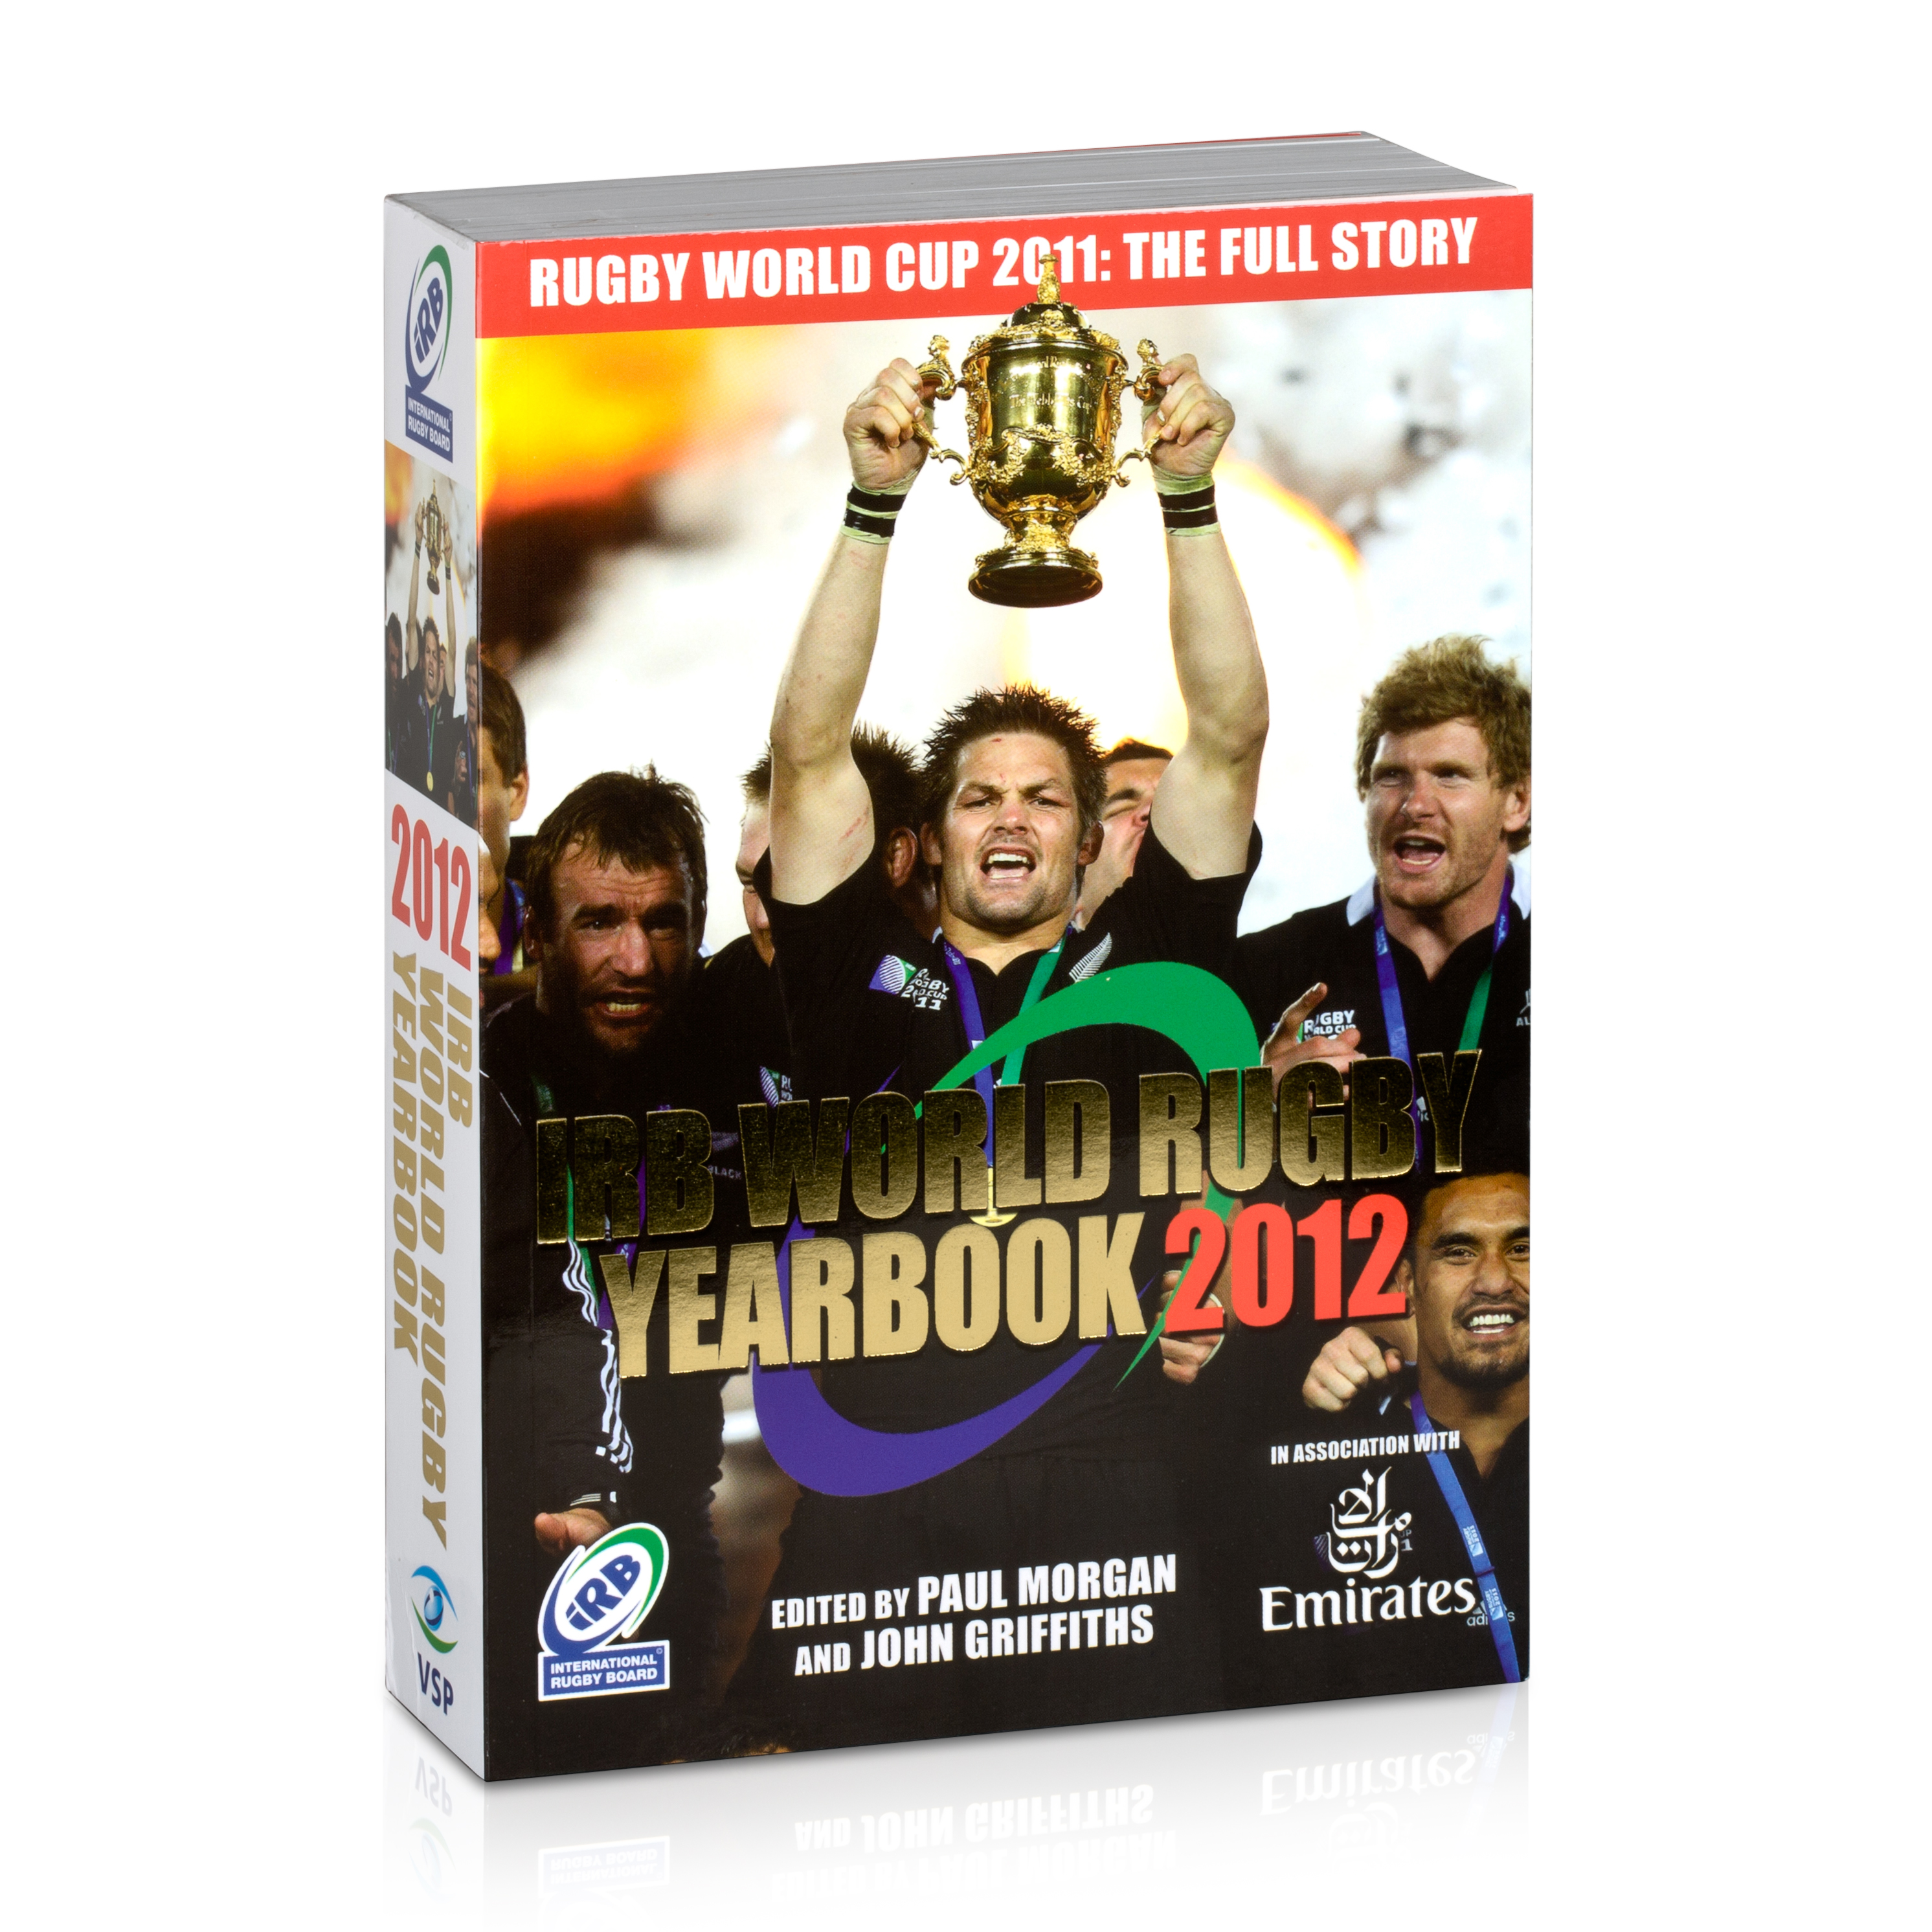 England IRB World Rugby Yearbook 2012 - Rugby World Cup 2011 Edition